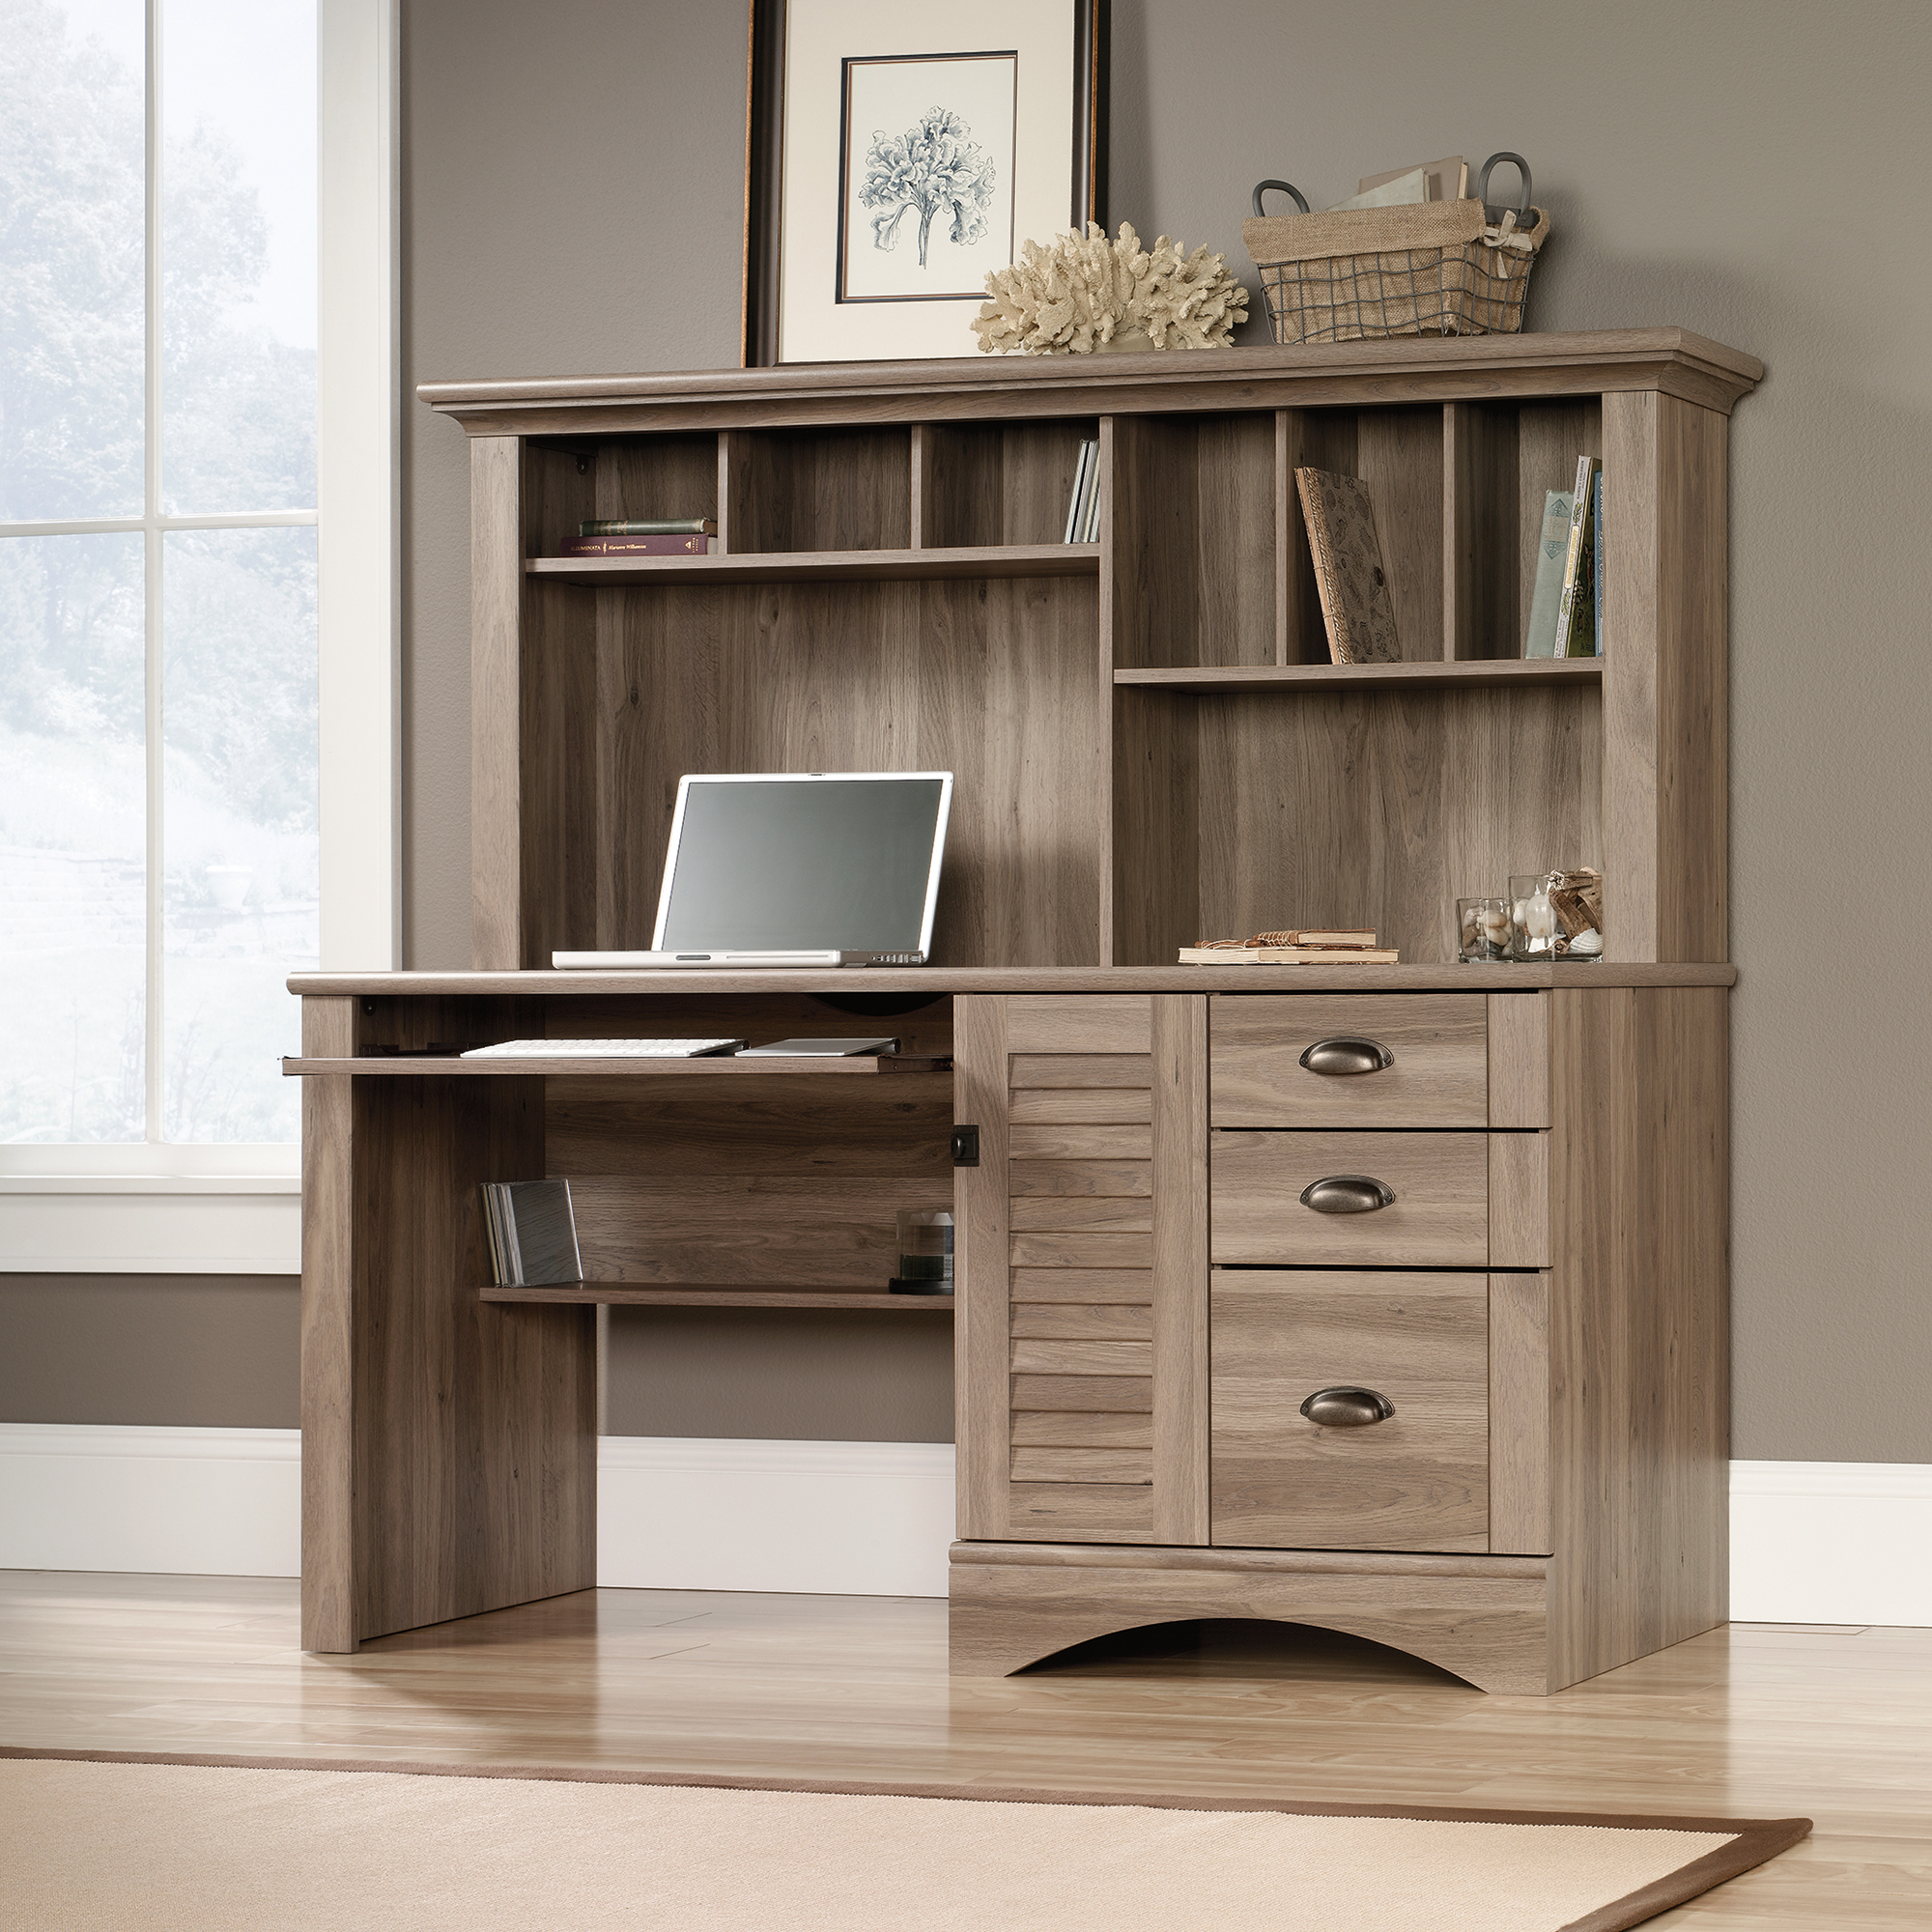 Sauder Computer Desks | Desks Amazon | L Shaped Computer Desk with Hutch